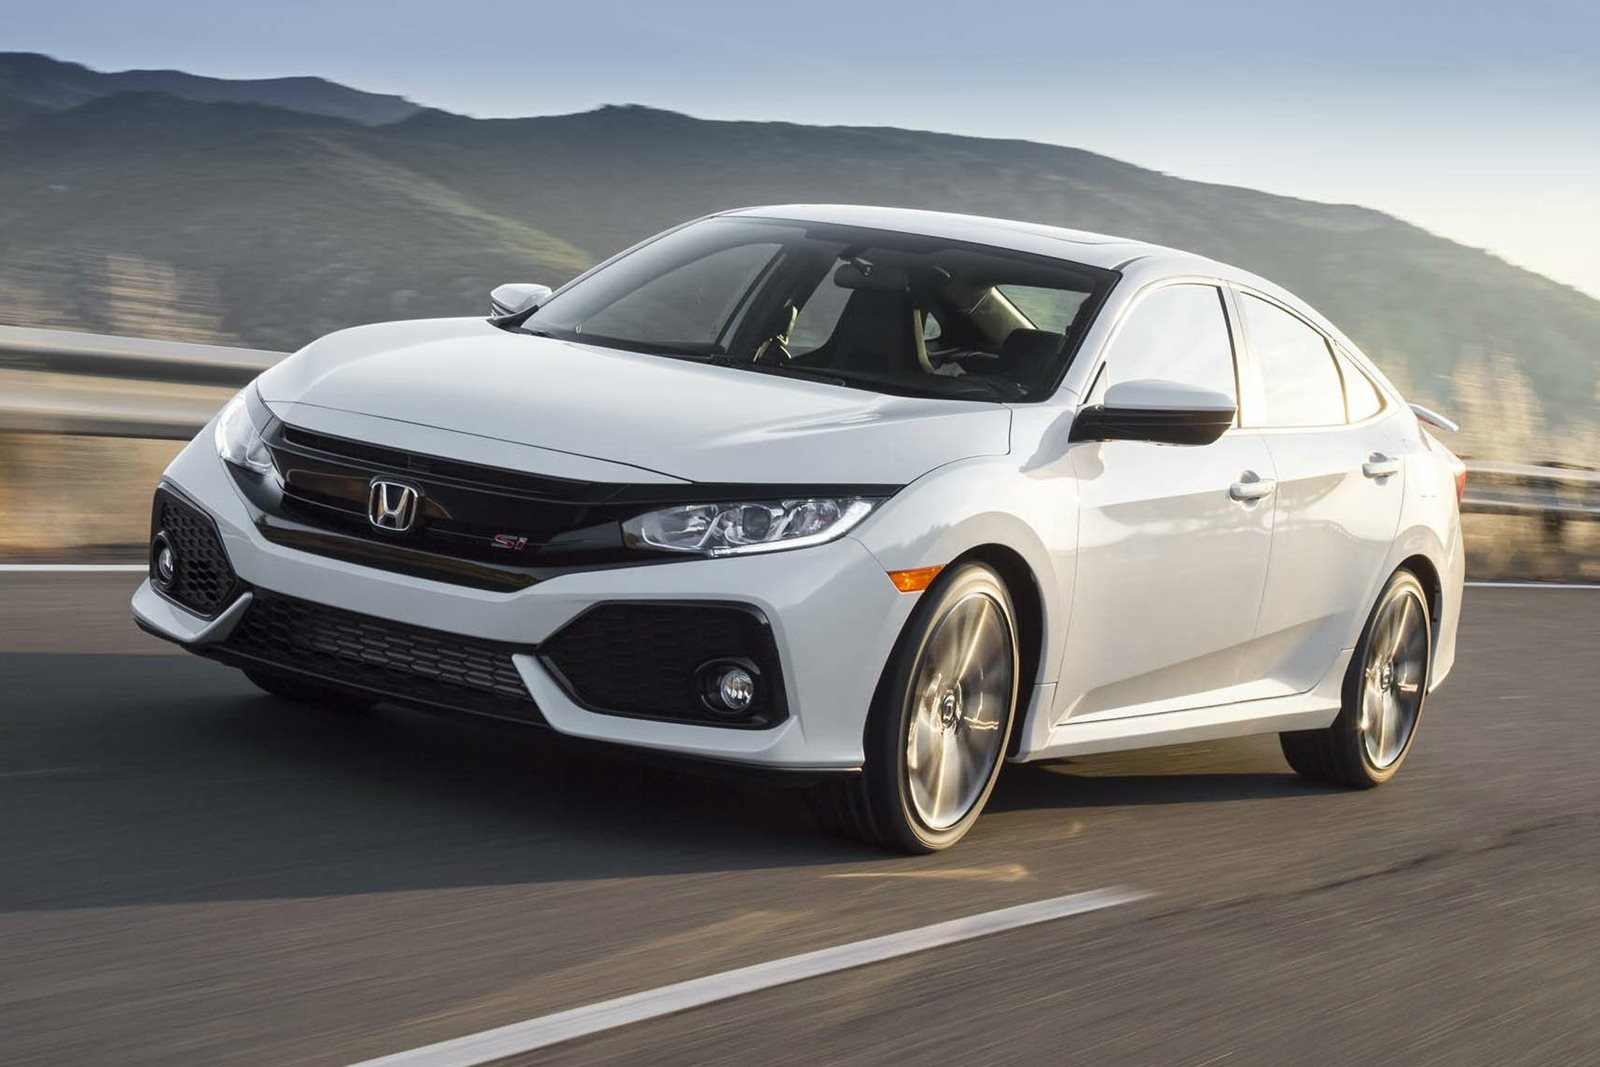 2018 Honda Civic Si Sedan Review Trims Specs And Price